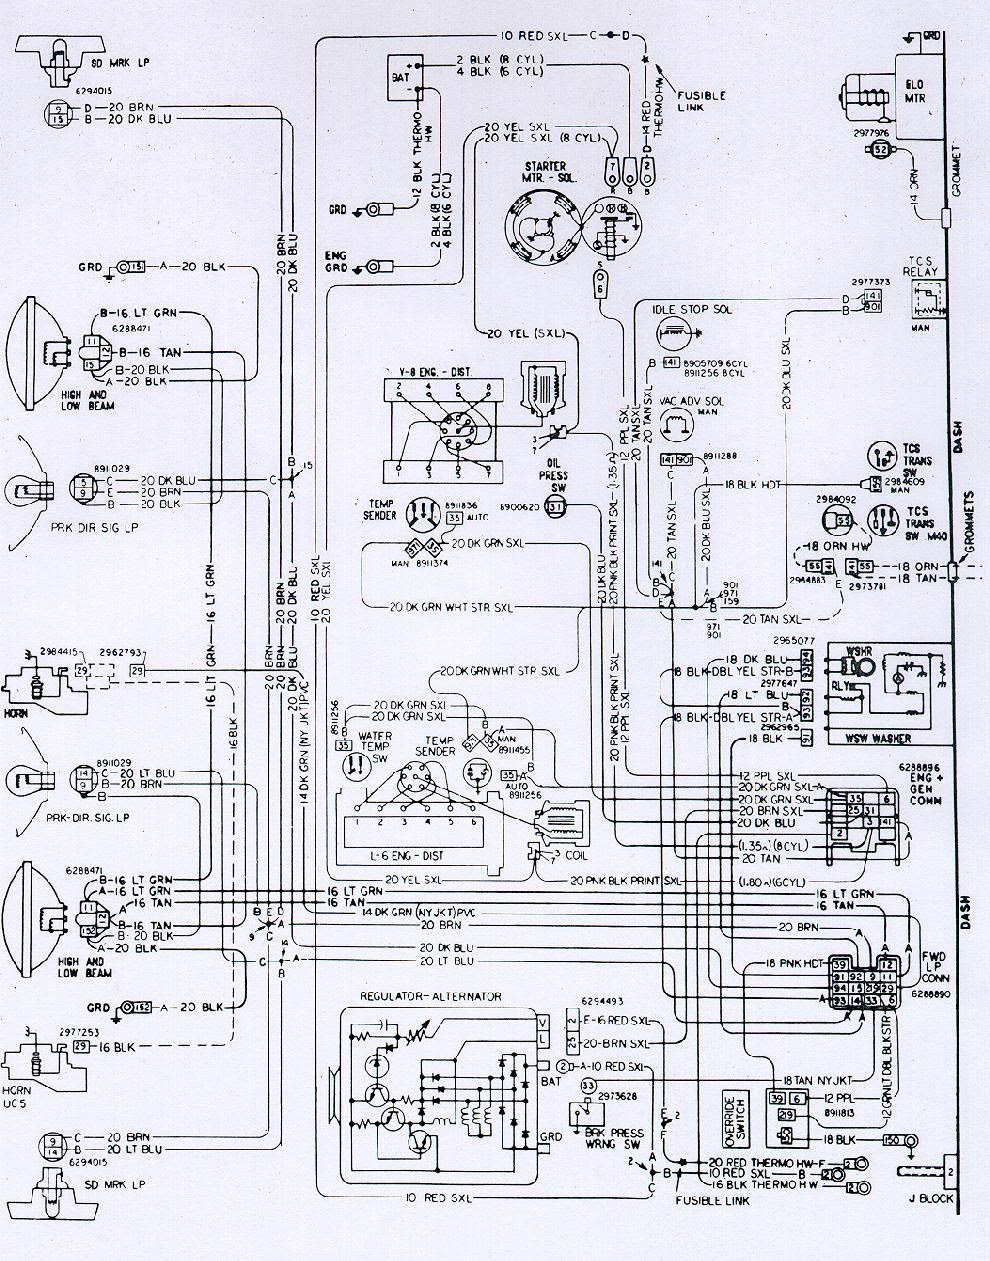 1972 Camaro Wiring Schematic Wiring Diagram Local A Local A Maceratadoc It